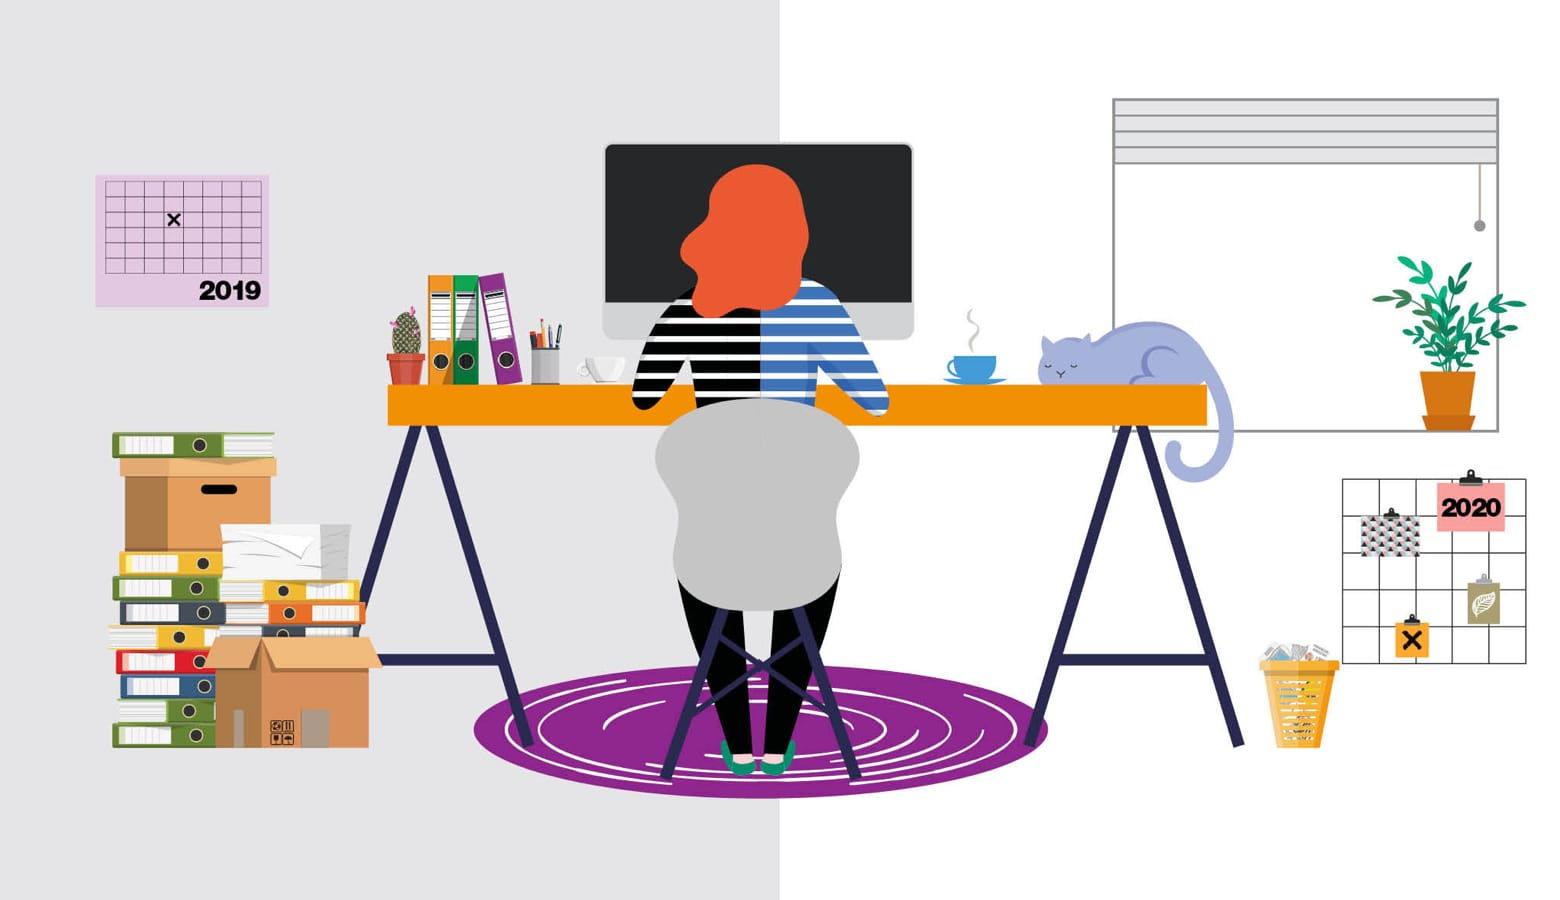 Illustration of a woman working at a trestle desk in a home office environment